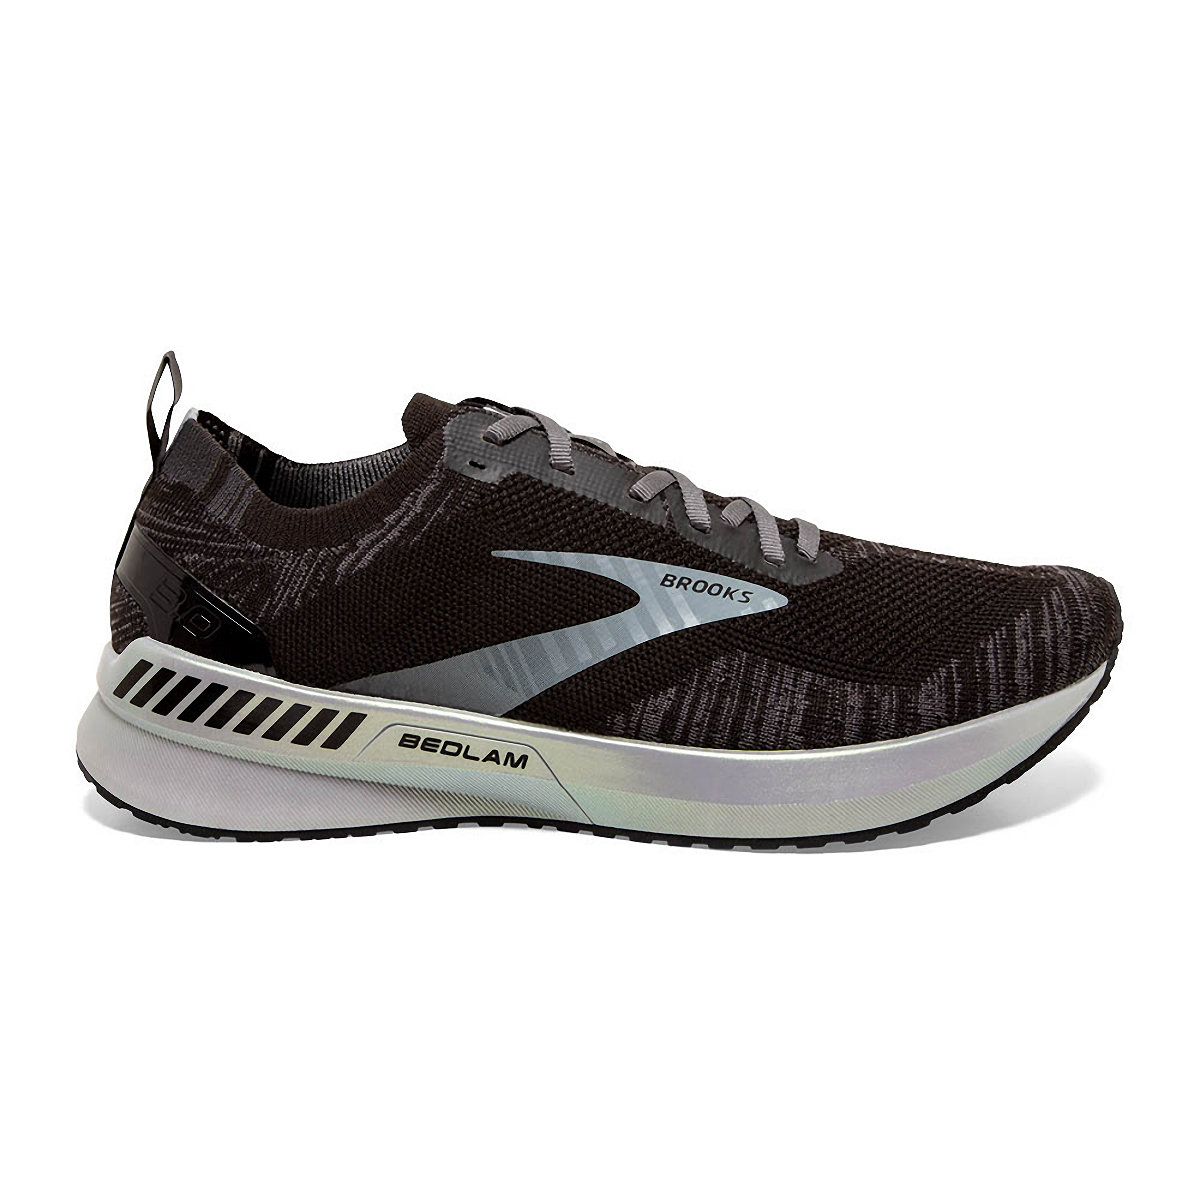 Men's Brooks Bedlam 3 Running Shoe - Color: Black/Blackened - Size: 8.5 - Width: Regular, Black/Blackened, large, image 1